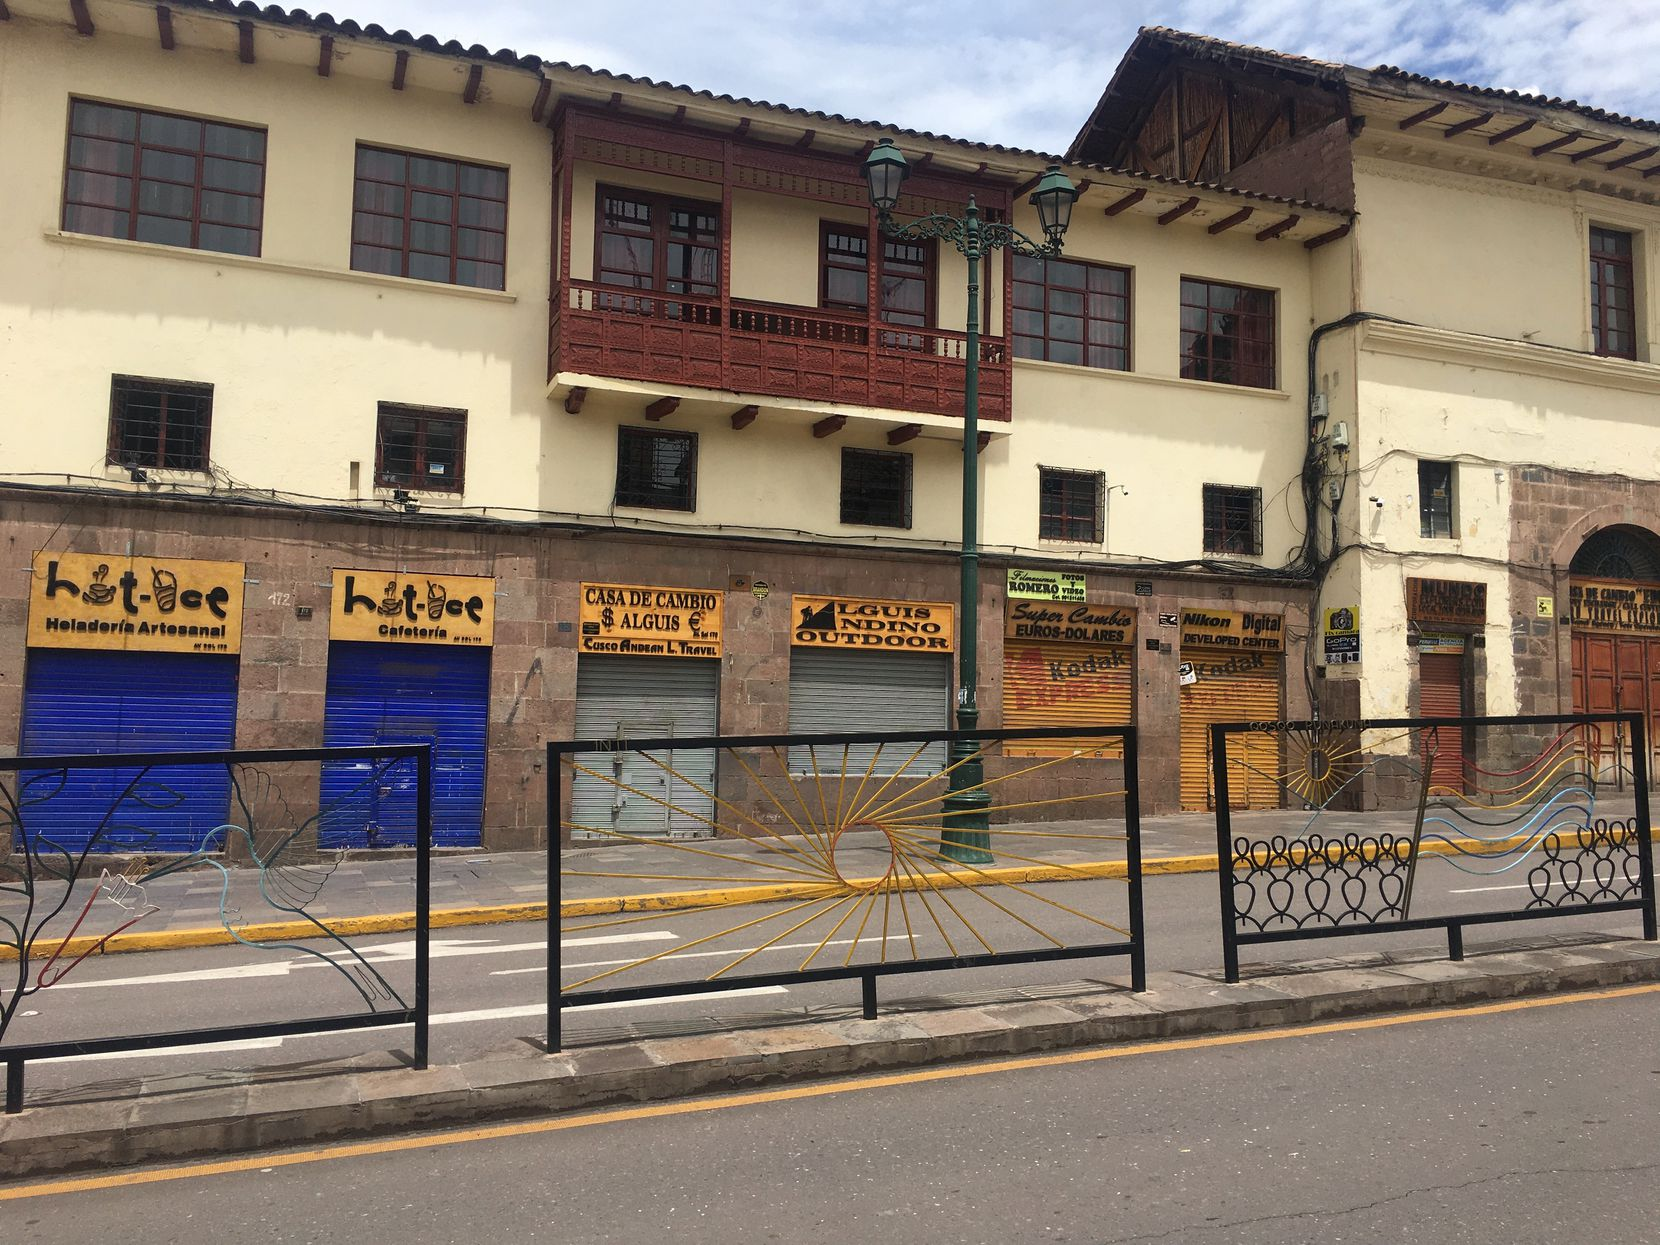 The streets of Cusco, Peru, were deserted Wednesday, March 18, 2020, after Peruvian President Martín Vizcarra put the country under a 15-day quarantine Sunday night to try and slow the spread of the new coronavirus. People were given just four hours notice to get back into houses and hotel rooms or risk arrest.